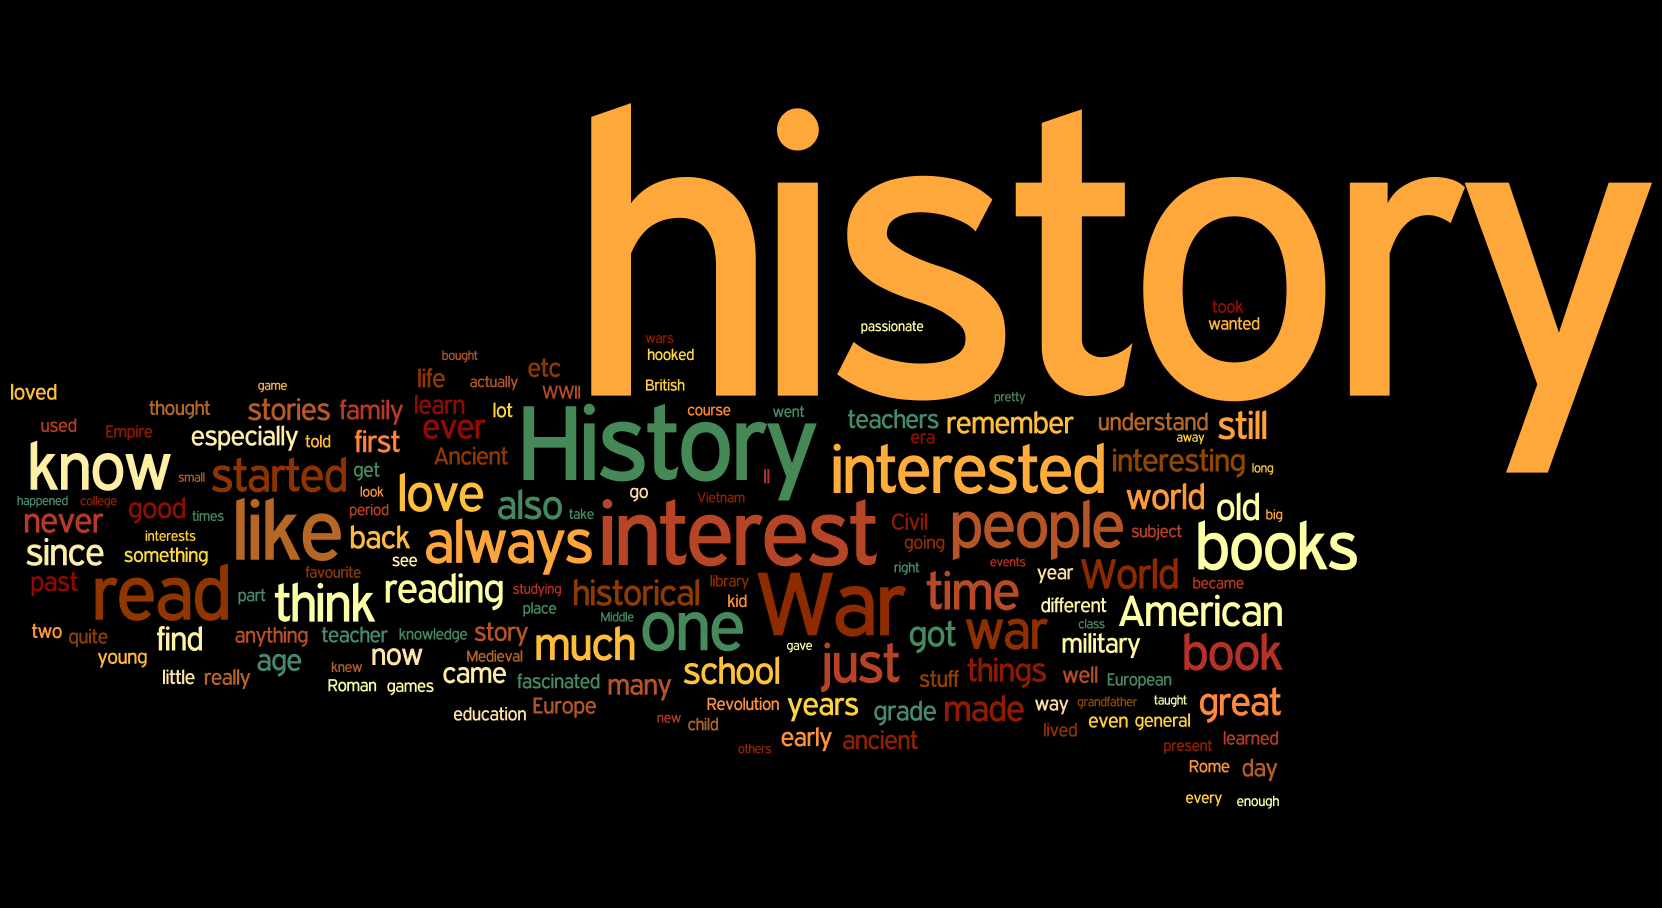 histiry Welcome to the department of history at kent state university we offer both major and minor programs at the undergraduate level, as well as ma and phd programs for advanced study in history.